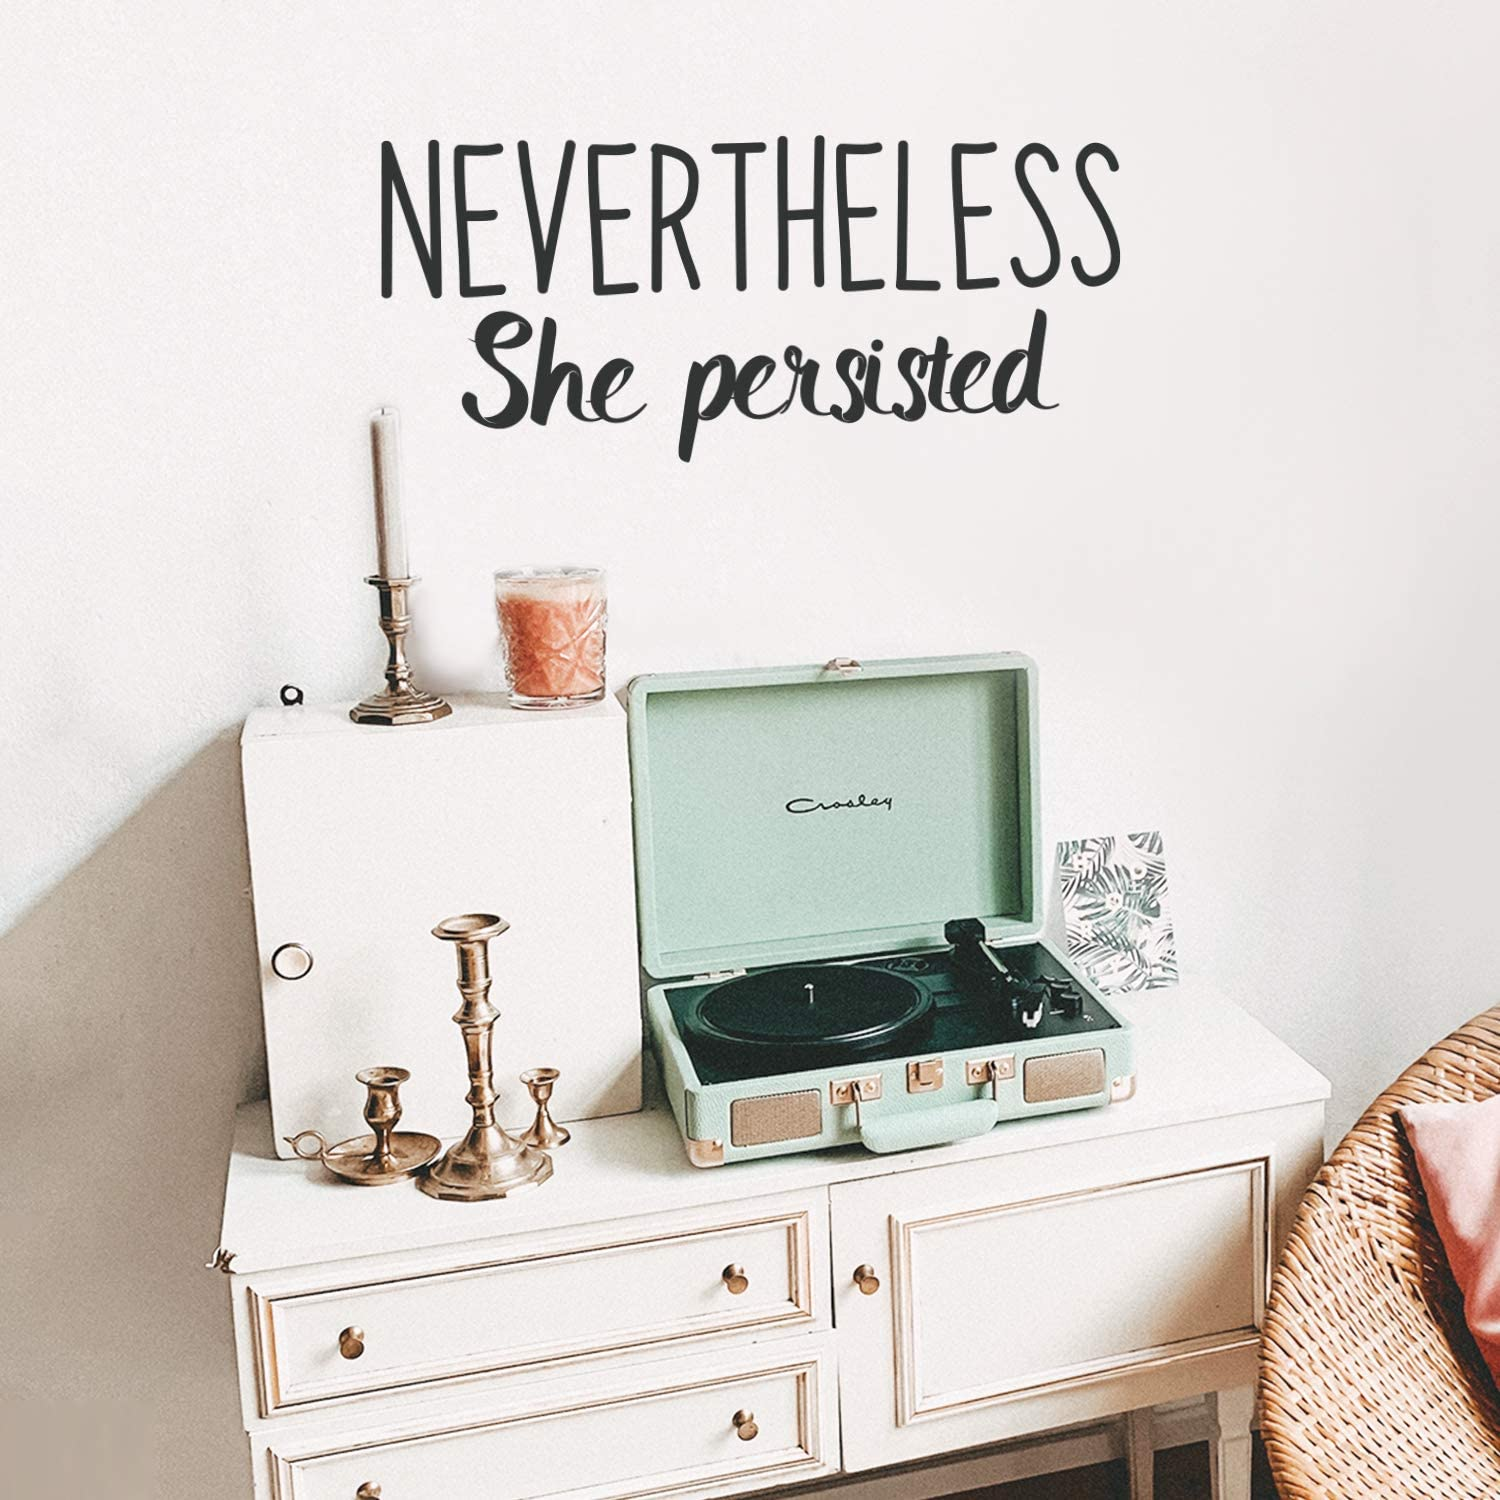 Vinyl Wall Art Decal - Nevertheless She Persisted - 15